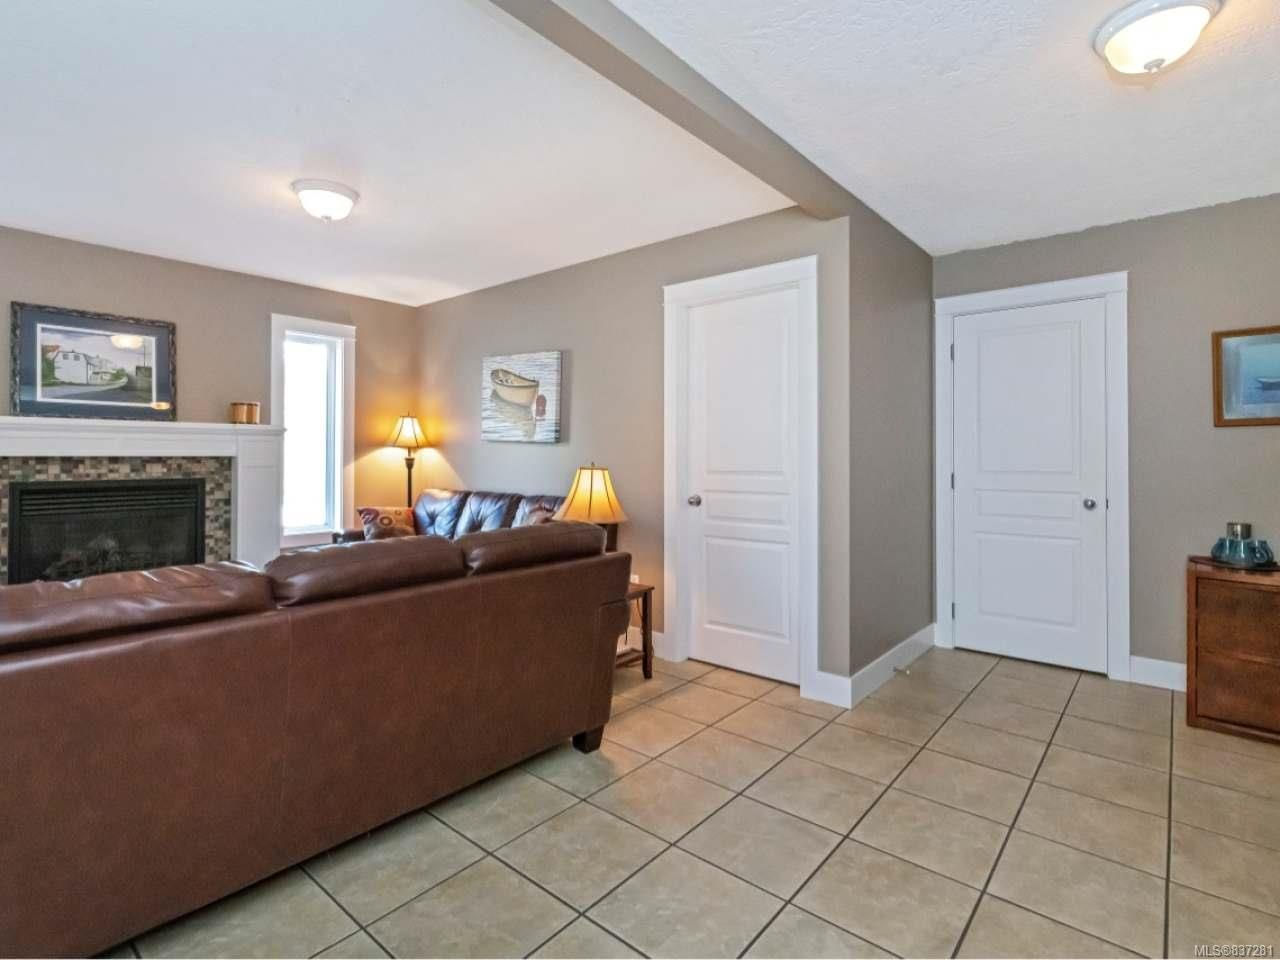 Photo 27: Photos: 925 Lilmac Rd in MILL BAY: ML Mill Bay House for sale (Malahat & Area)  : MLS®# 837281